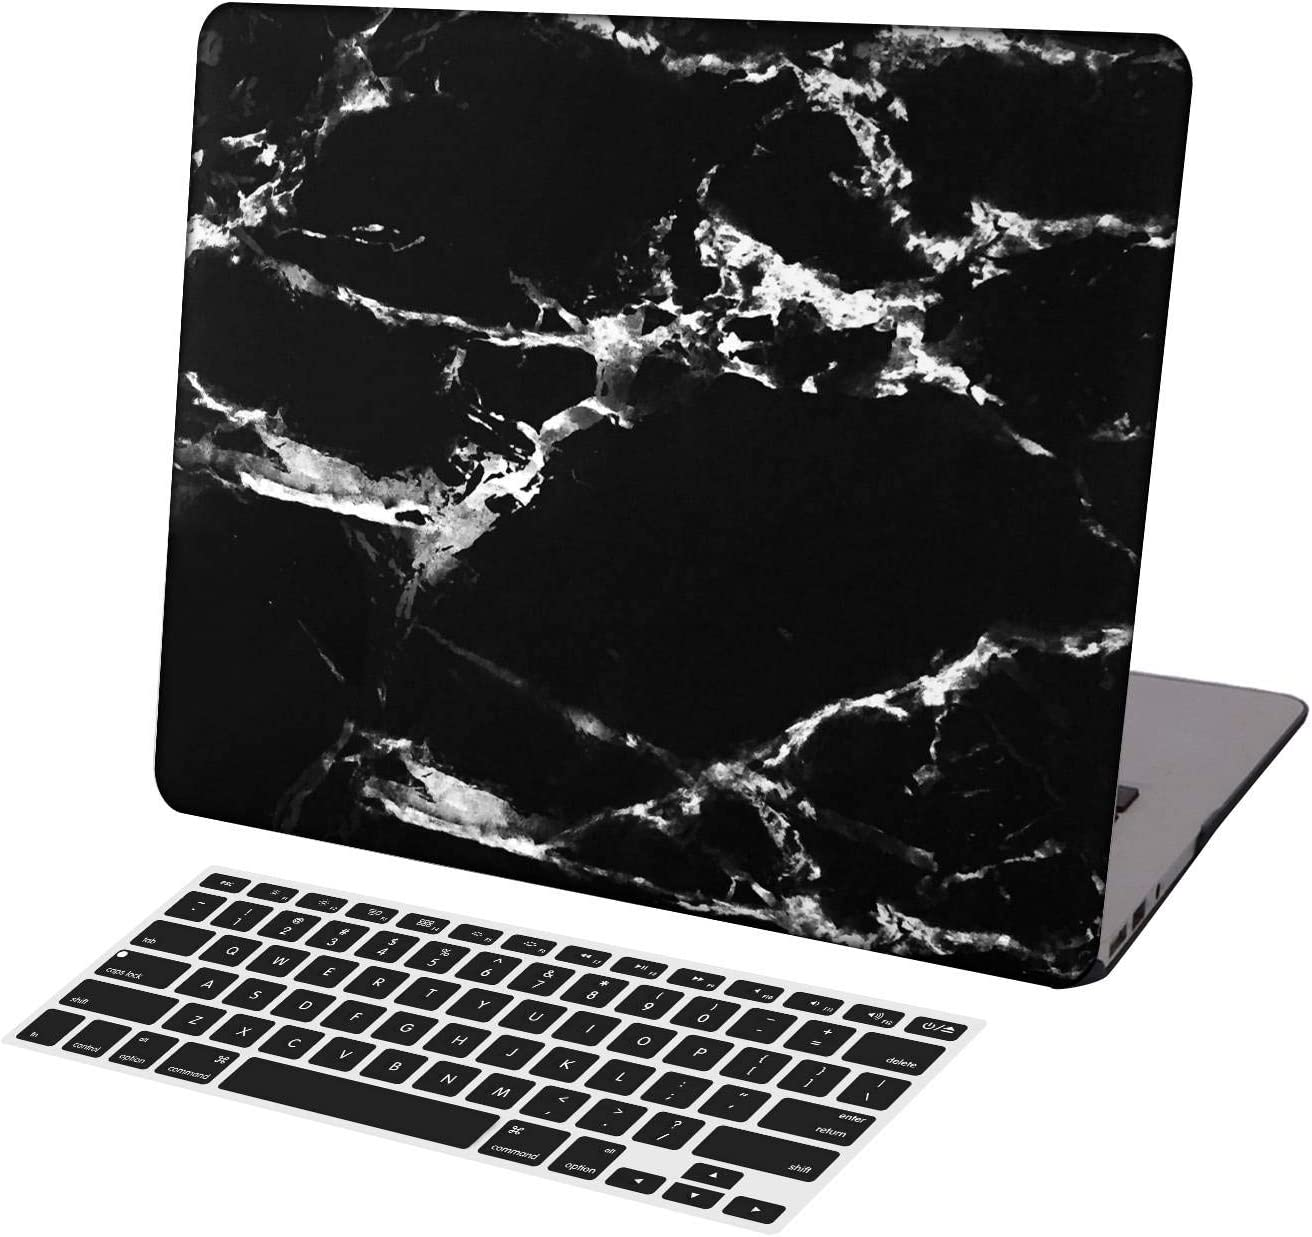 KSK KAISHEK Laptop Case for Newest MacBook Air 13 inch Model A1932/A2179,Plastic Ultra Slim Light Hard Shell + Keyboard Cover Compatible MacBook Air 13 inch 2018-2020 Release,Black & White Marble